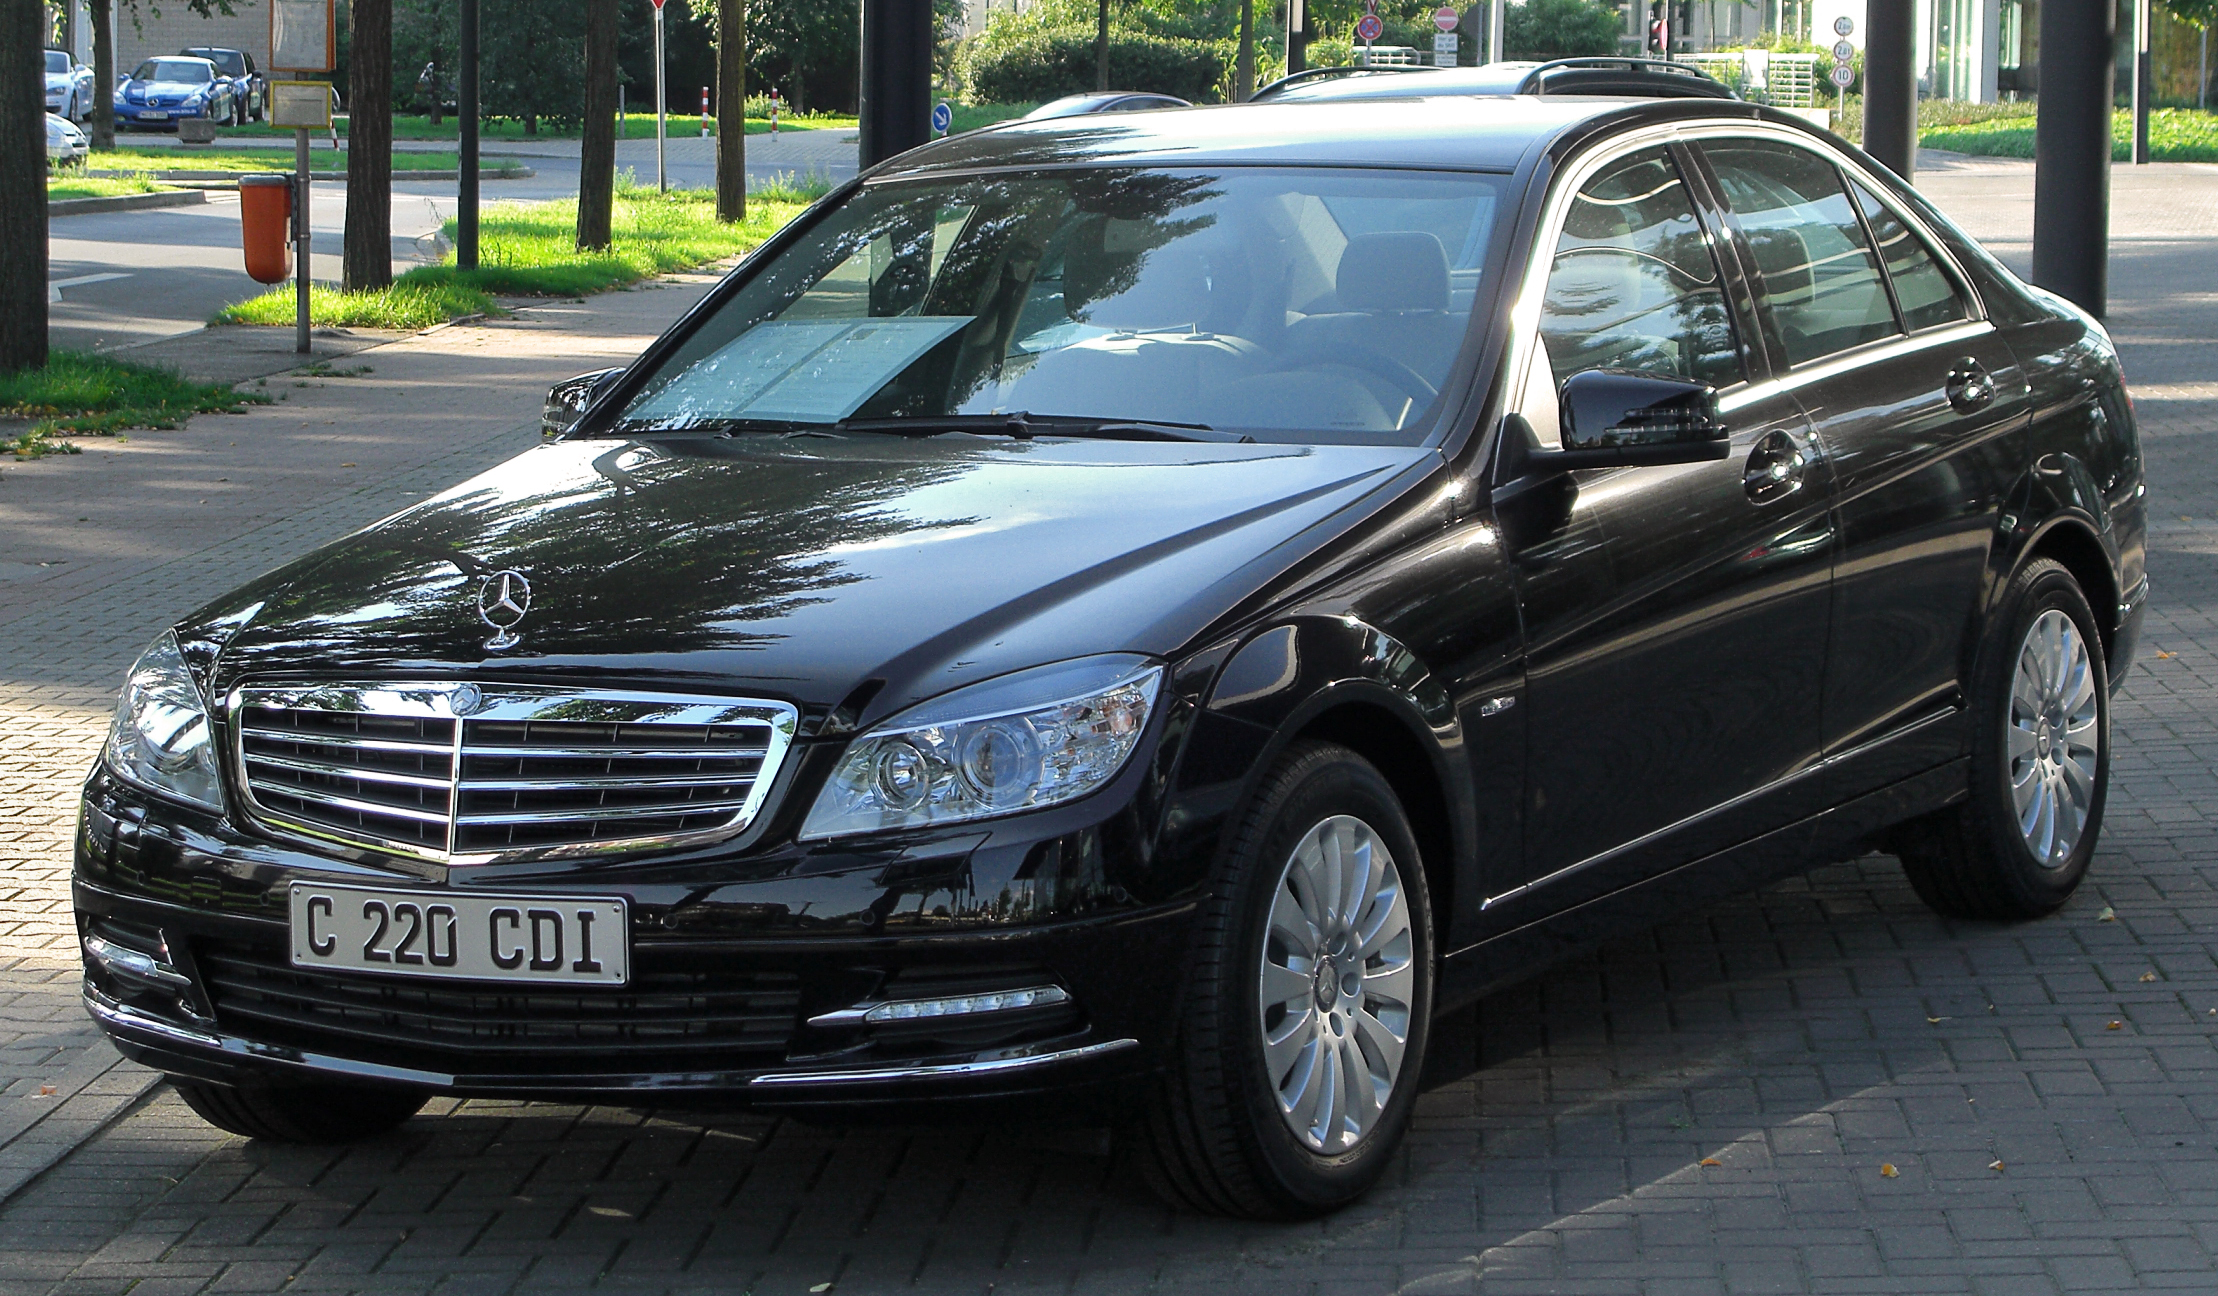 mercedes benz c 220 cdi blueefficiency photos and comments. Black Bedroom Furniture Sets. Home Design Ideas